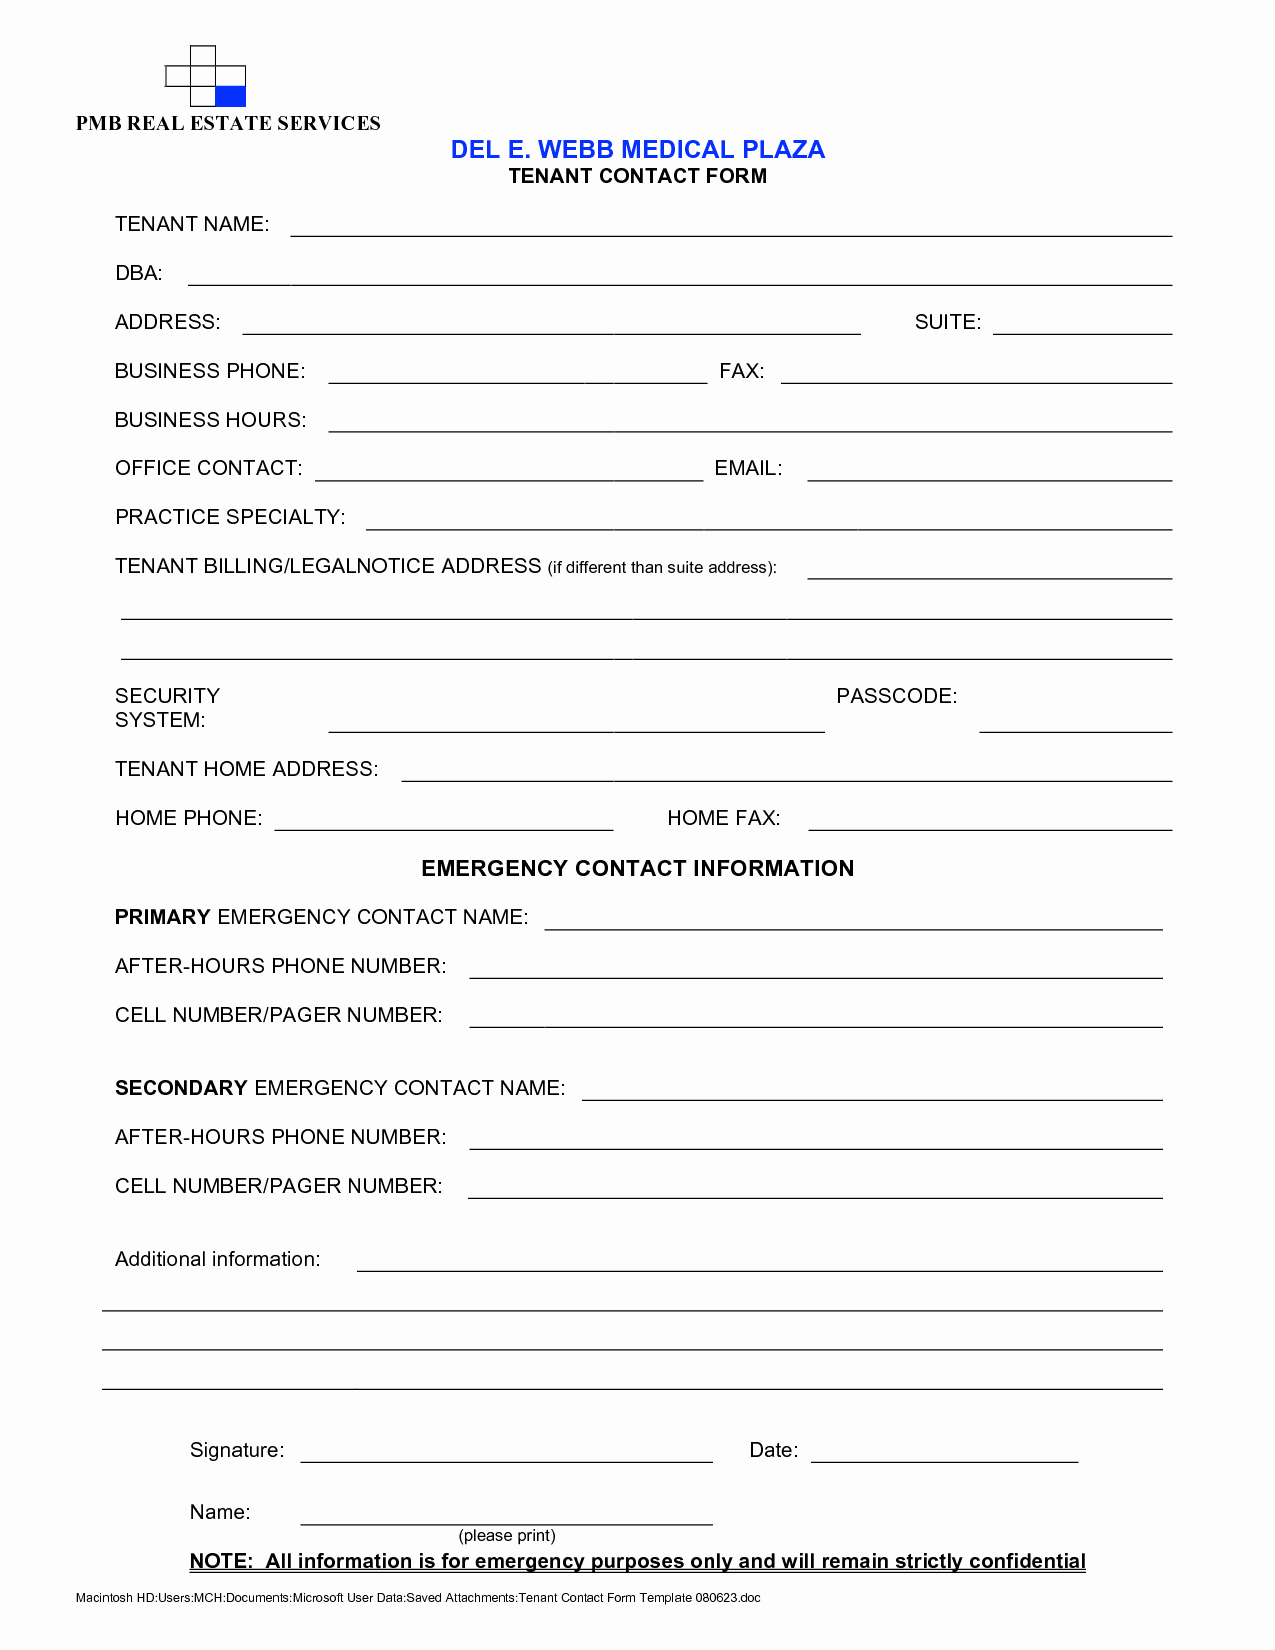 Contact Information form Template Word Awesome Best S Of Tenant Contact Information form Template